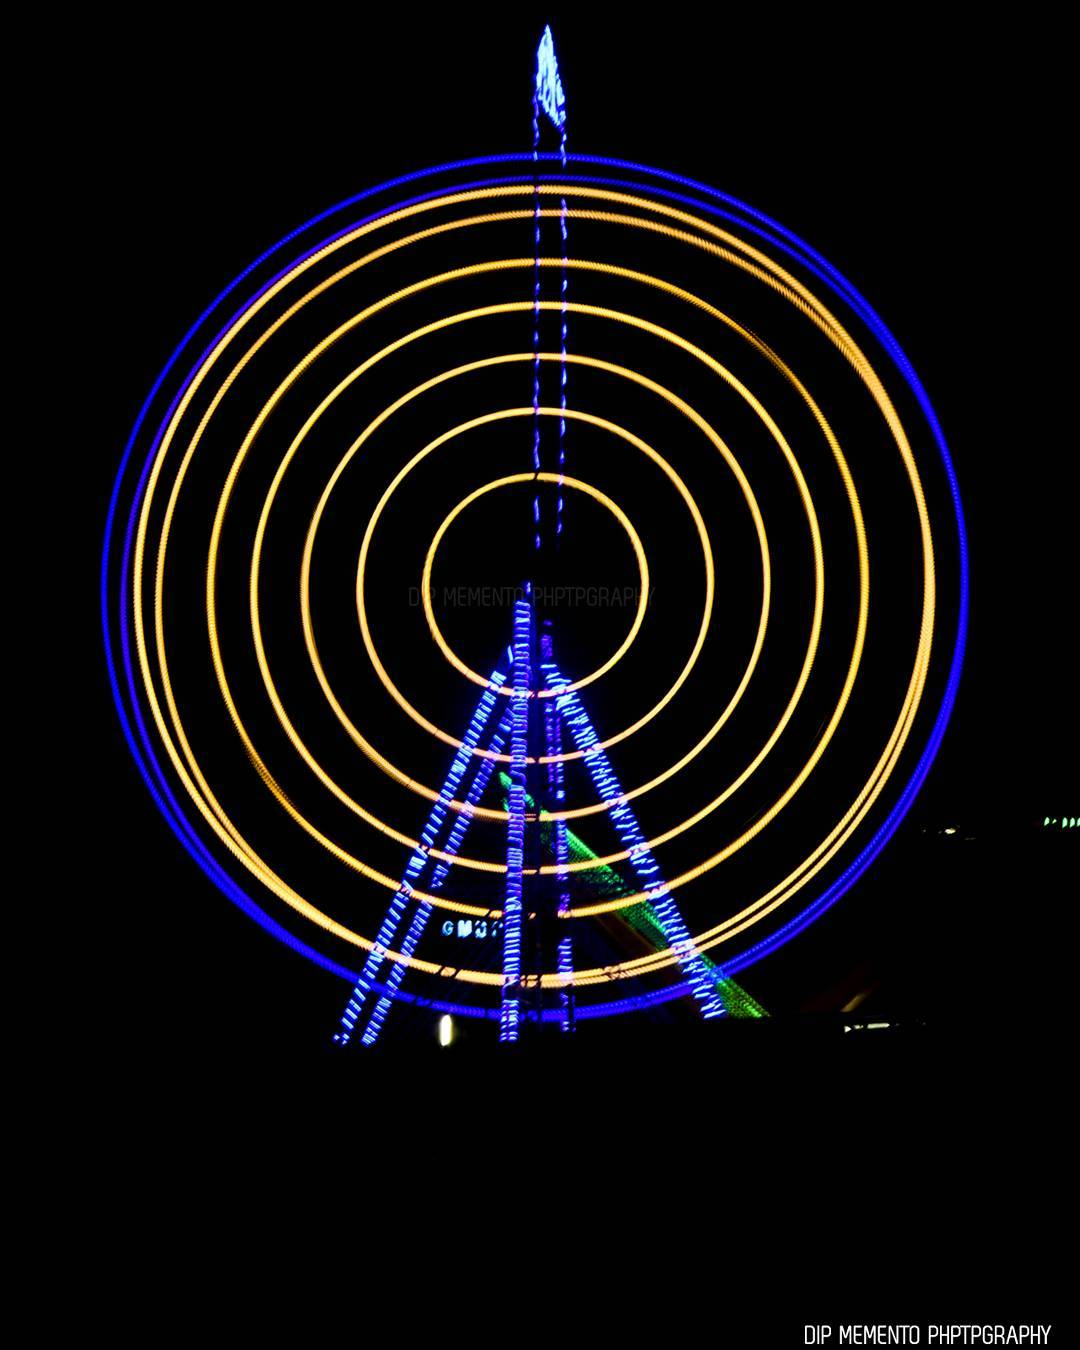 Dip Memento Photography,  longexposure, ferrieswheel, photography, photoholic, photographers_of_india, amdavad, ahmedabad, ahmedabadphotography, lightpainting, light, thoughts, canon, nikon, photooftheday, travel, art, picoftheday, beautiful, instagram, instagood, photos, photograph#picture, summer, pic, love, indiaclicks, foto4everofficial, like4like, likeforlike